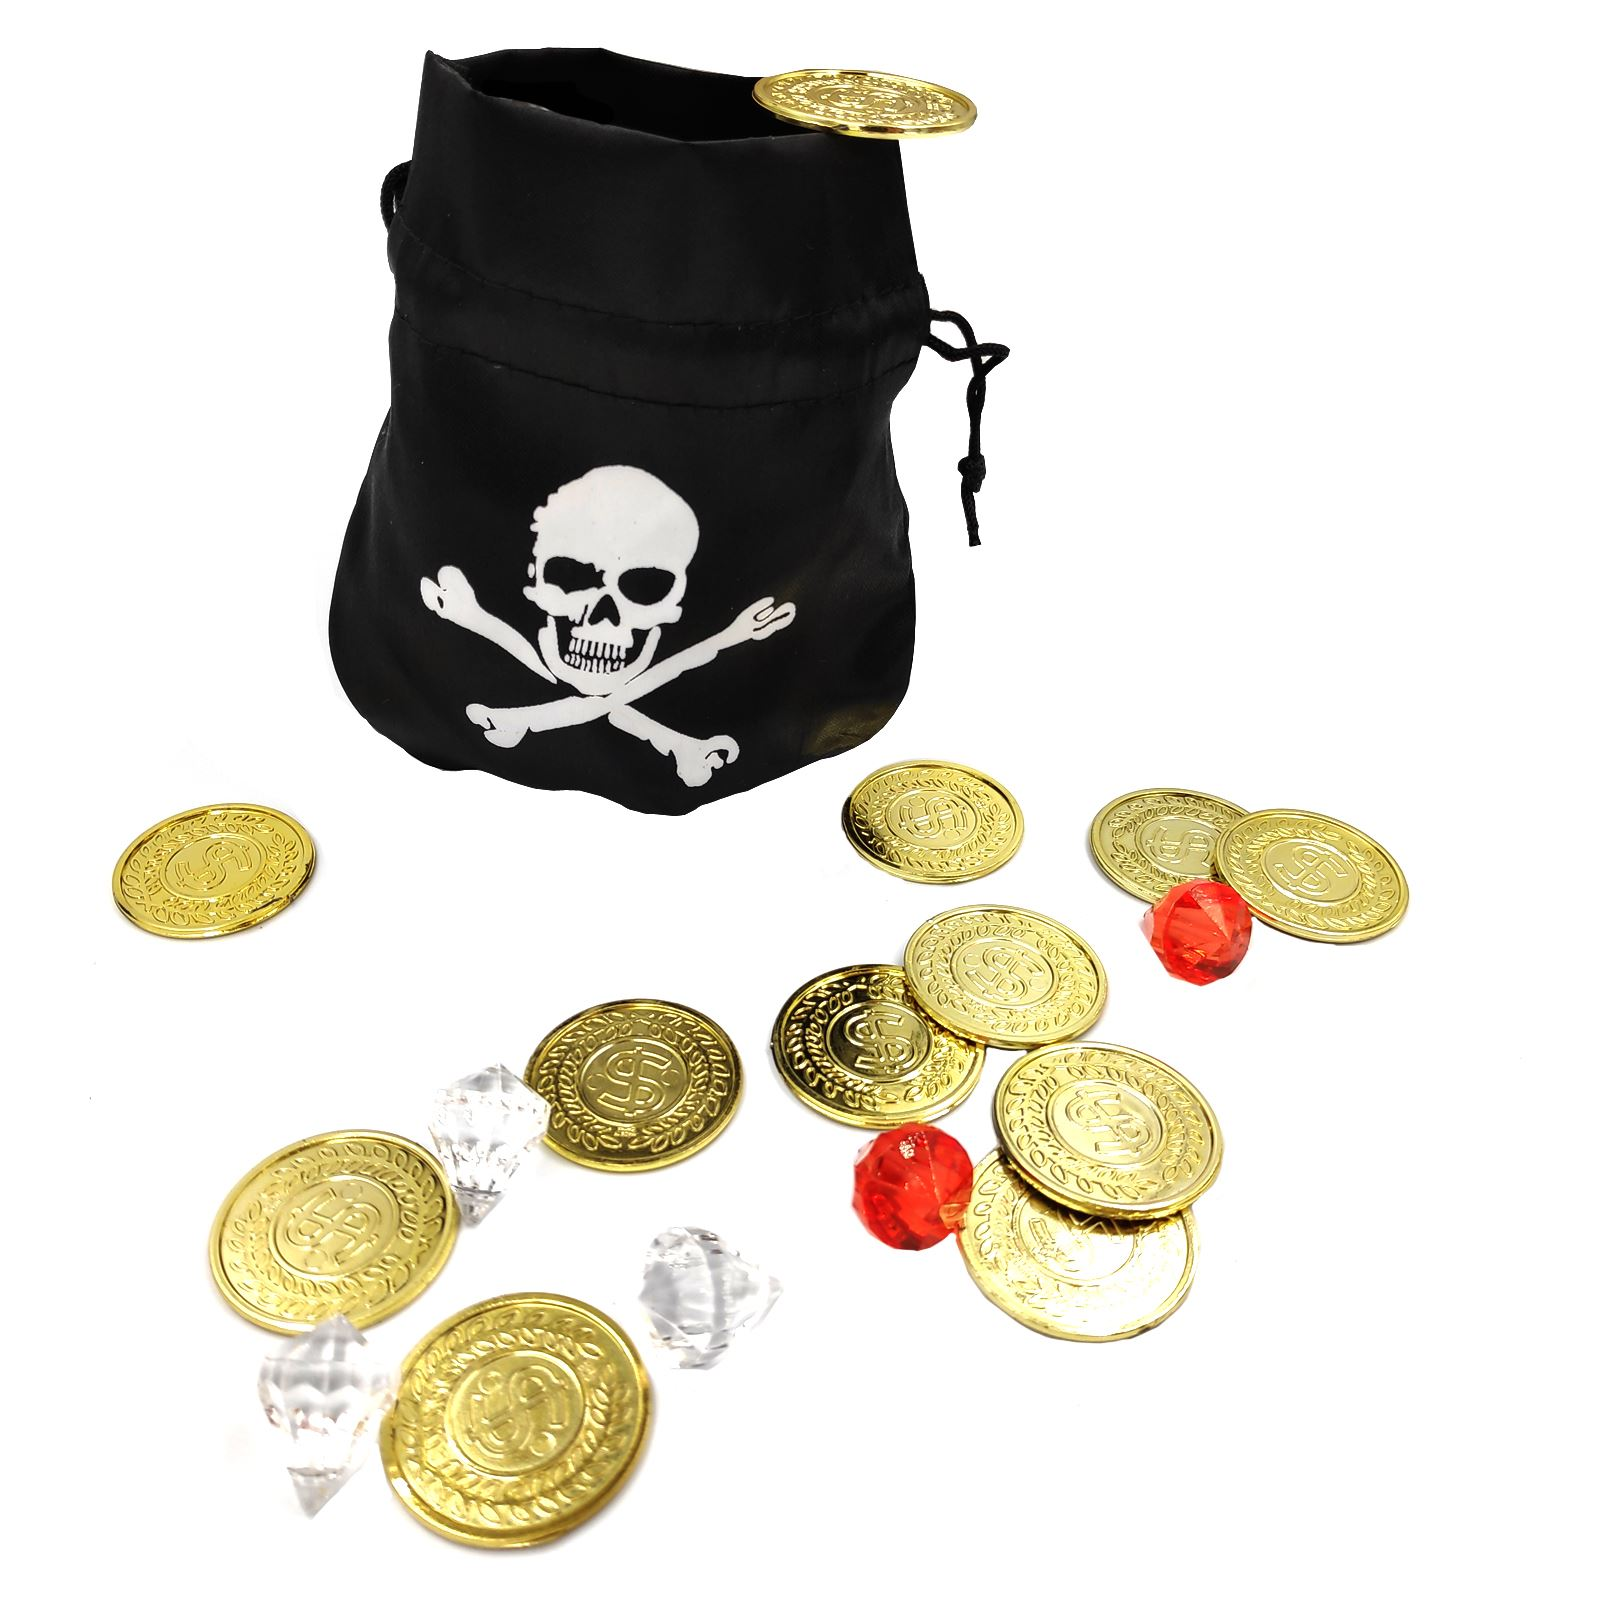 Pirate Money Pouch Loot Bag Coins /& Jewellery Pirates Treasure Fancy Dress